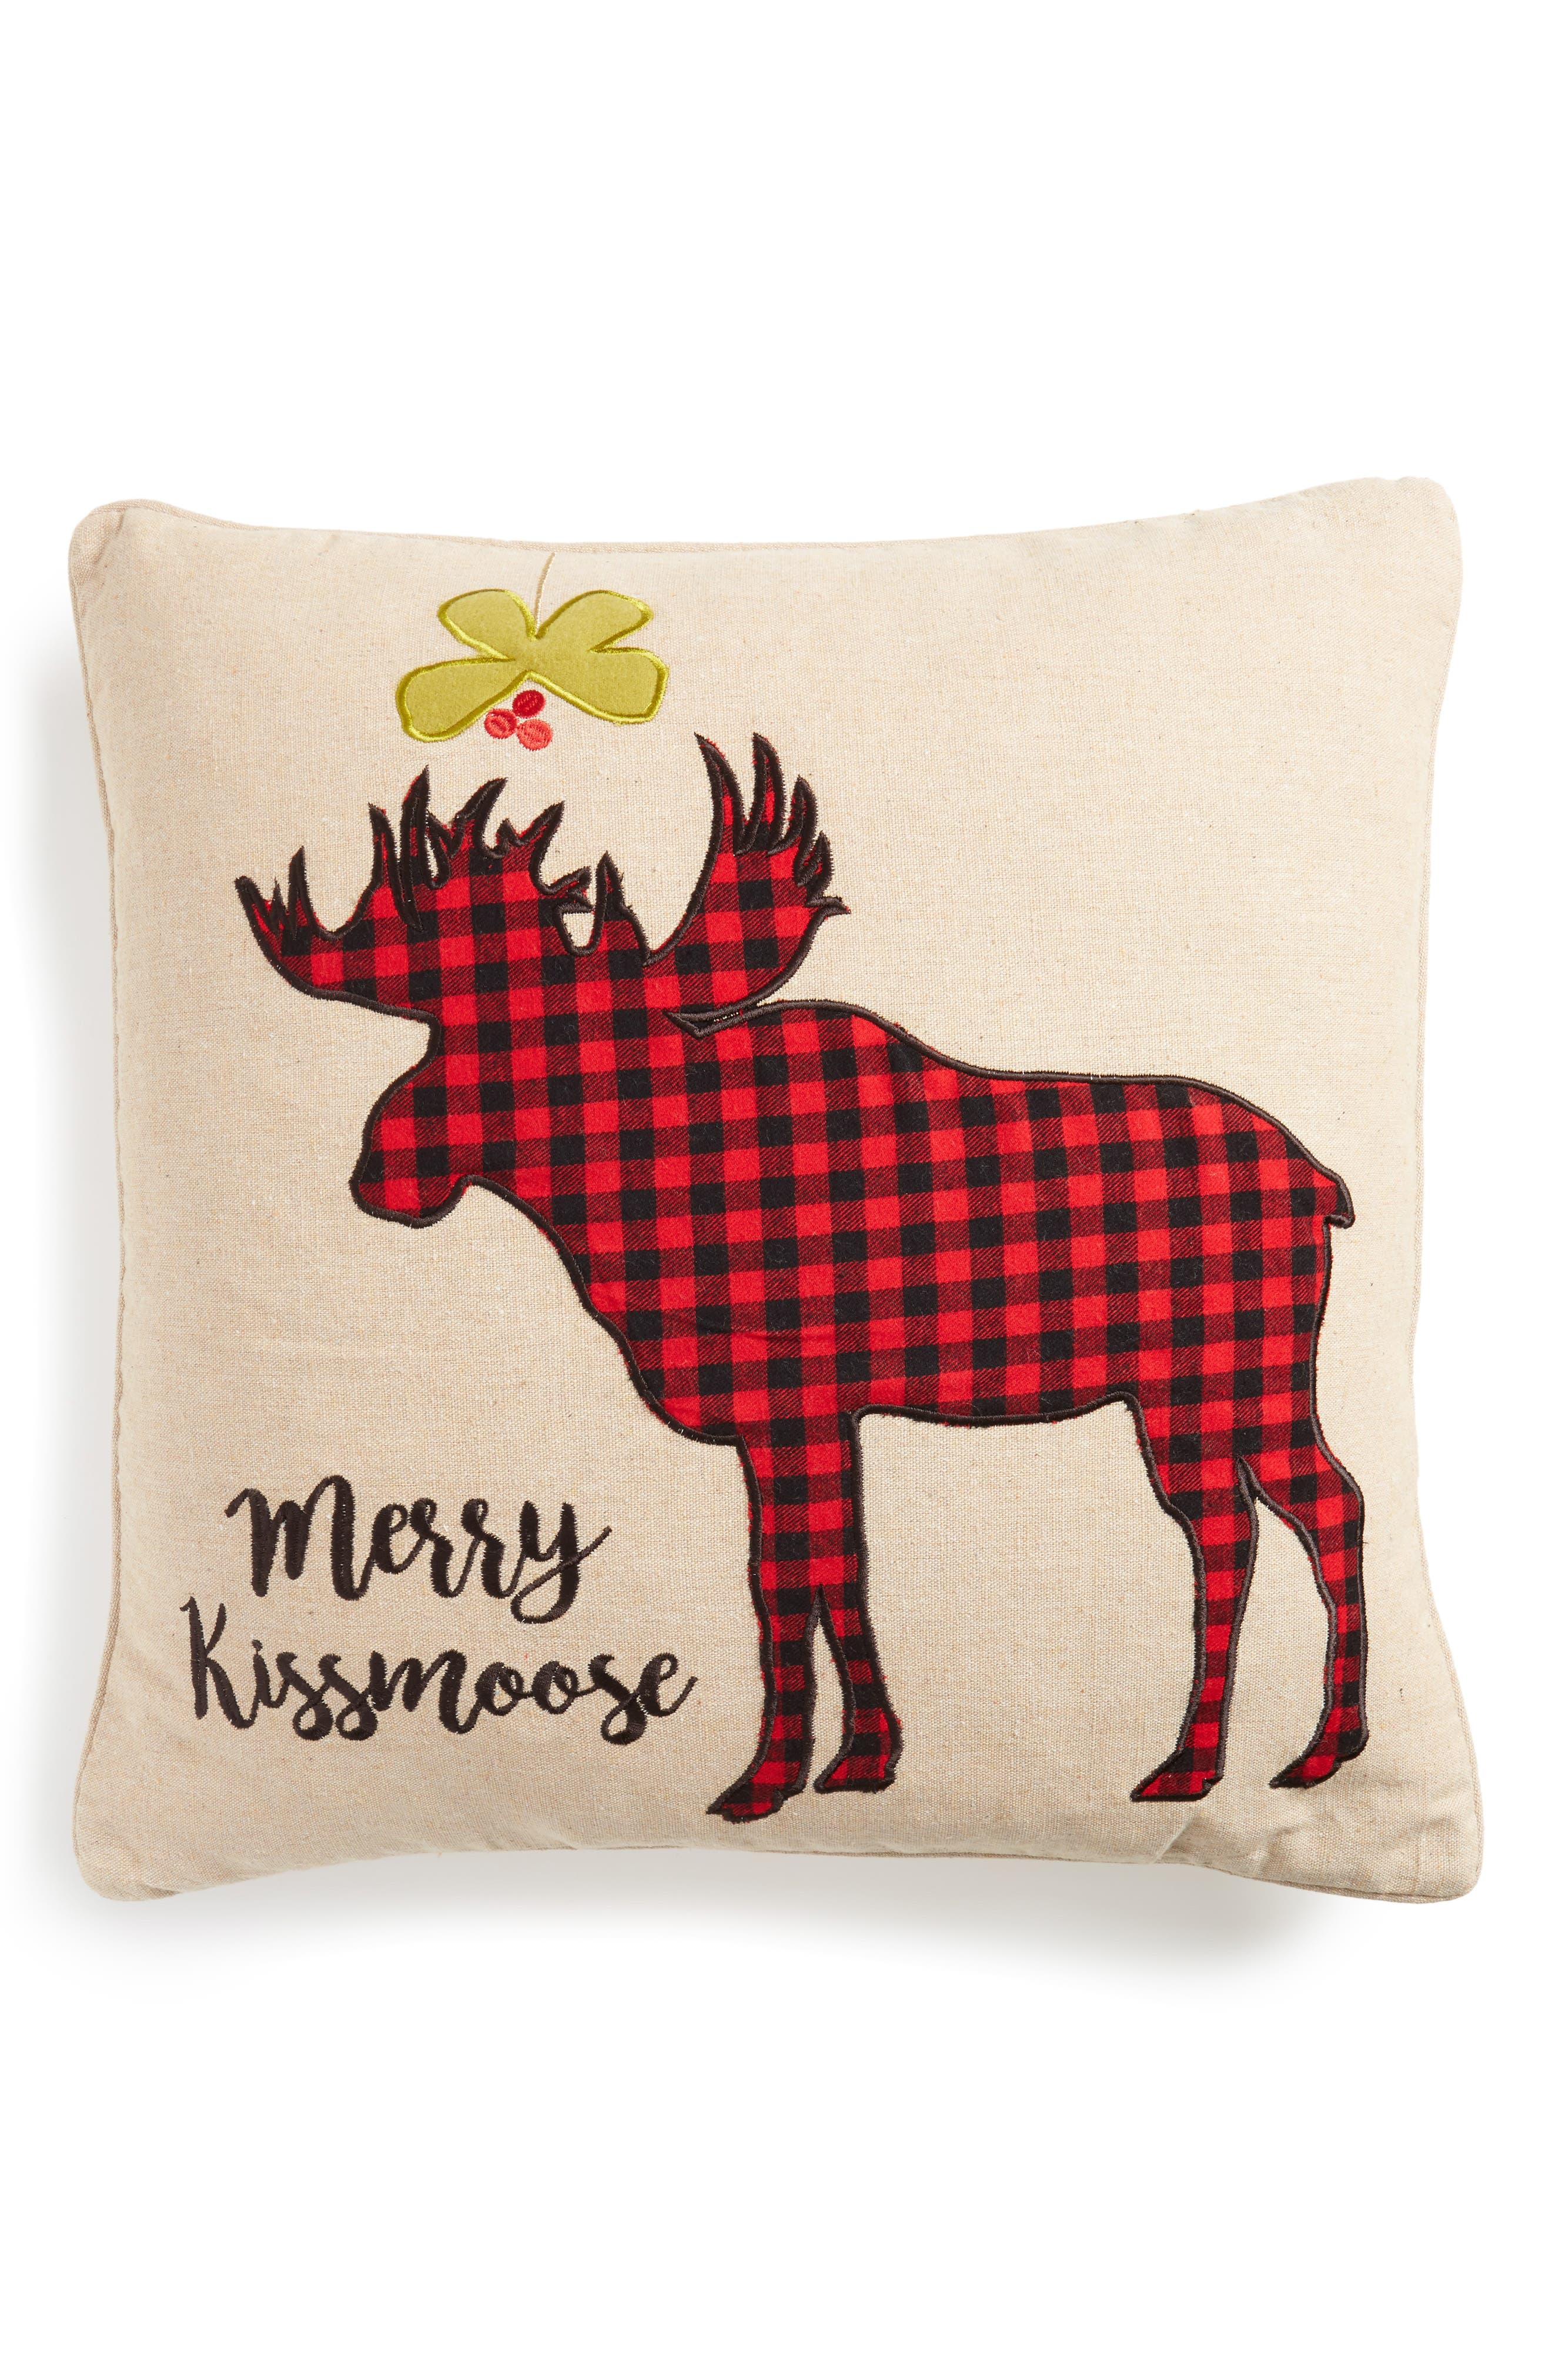 Levtex Plaid Merry Kissmoose Accent Pillow